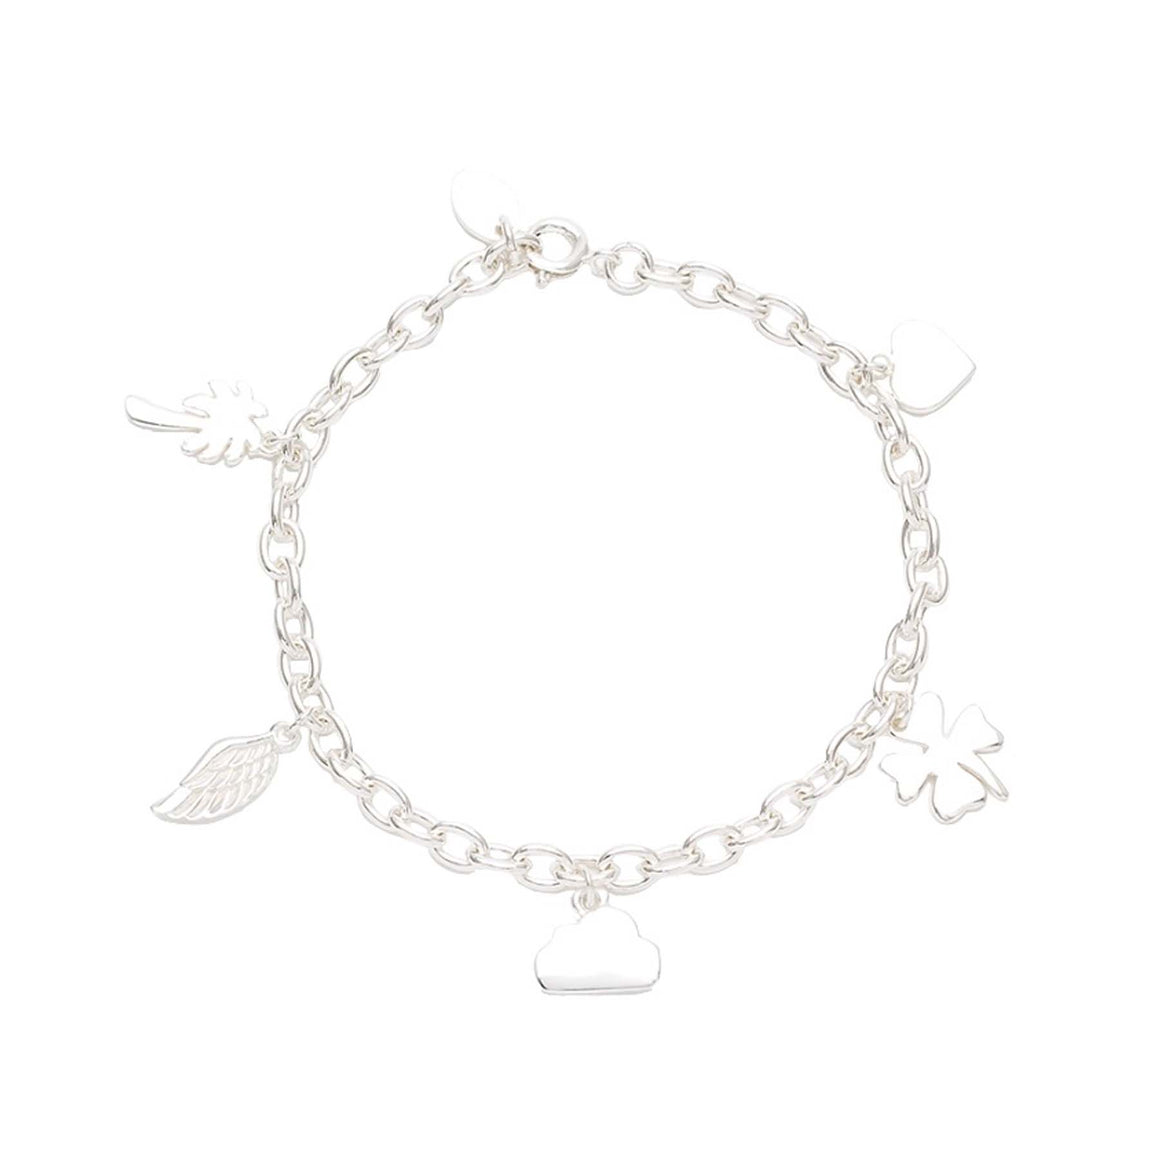 silver links bracelet with charms